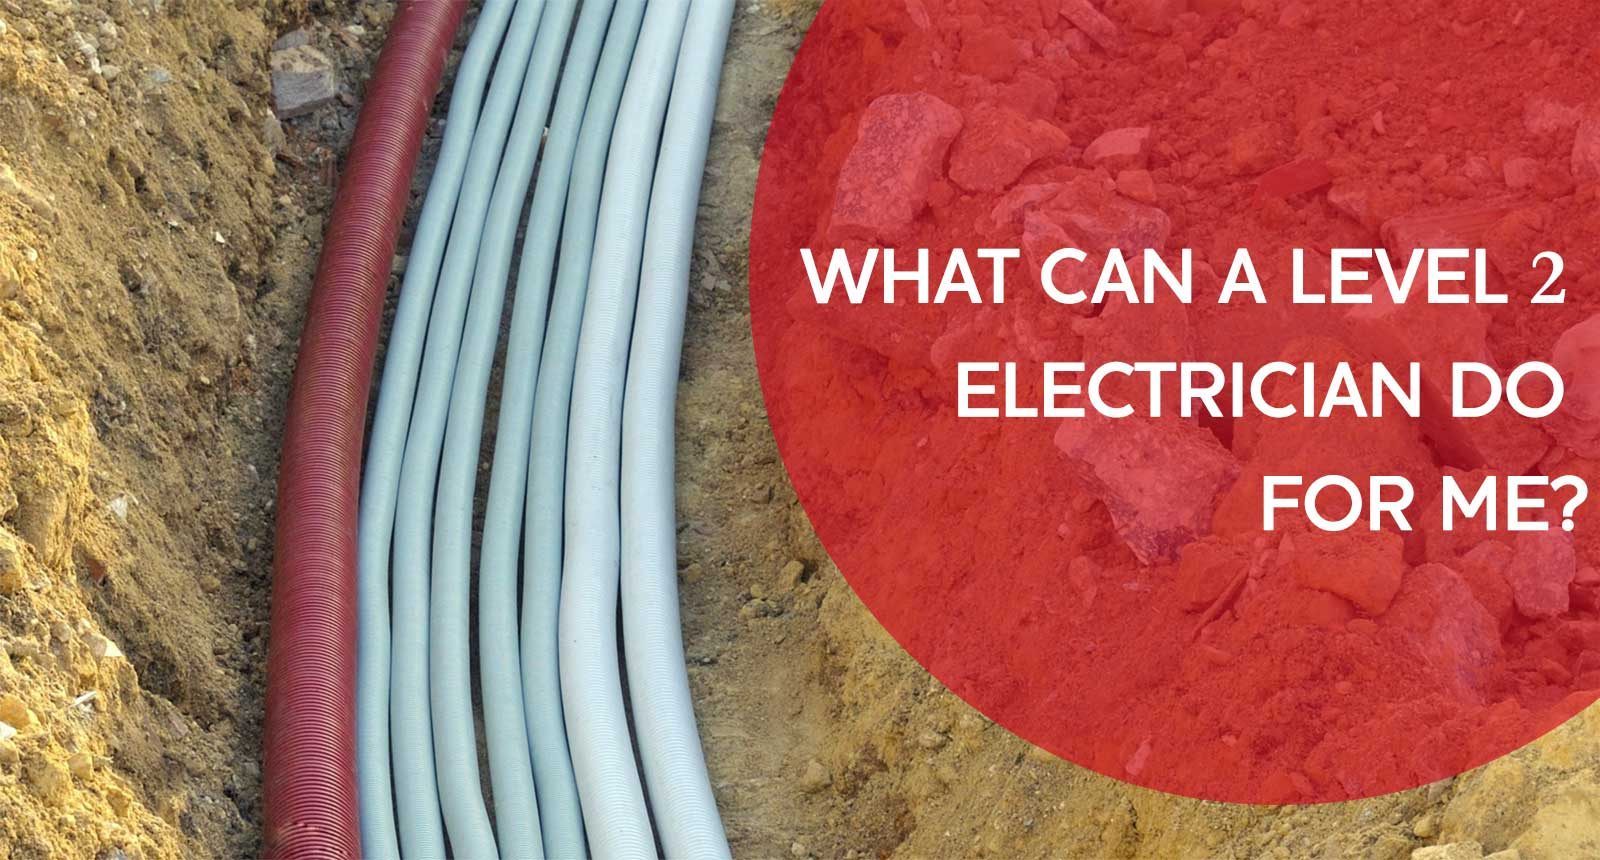 WHAT CAN A LEVEL 2 ELECTRICIAN DO FOR ME?